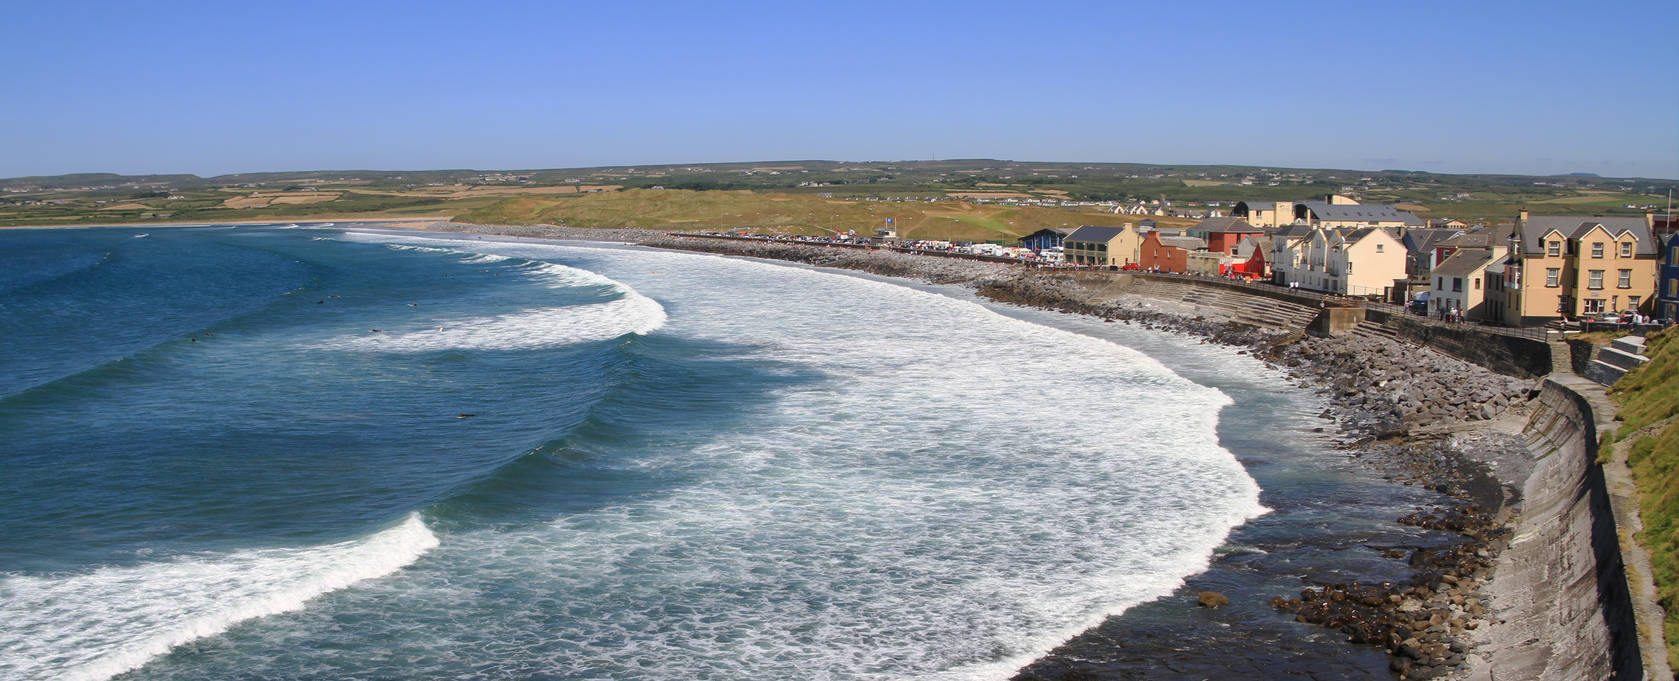 Lahinch coastline